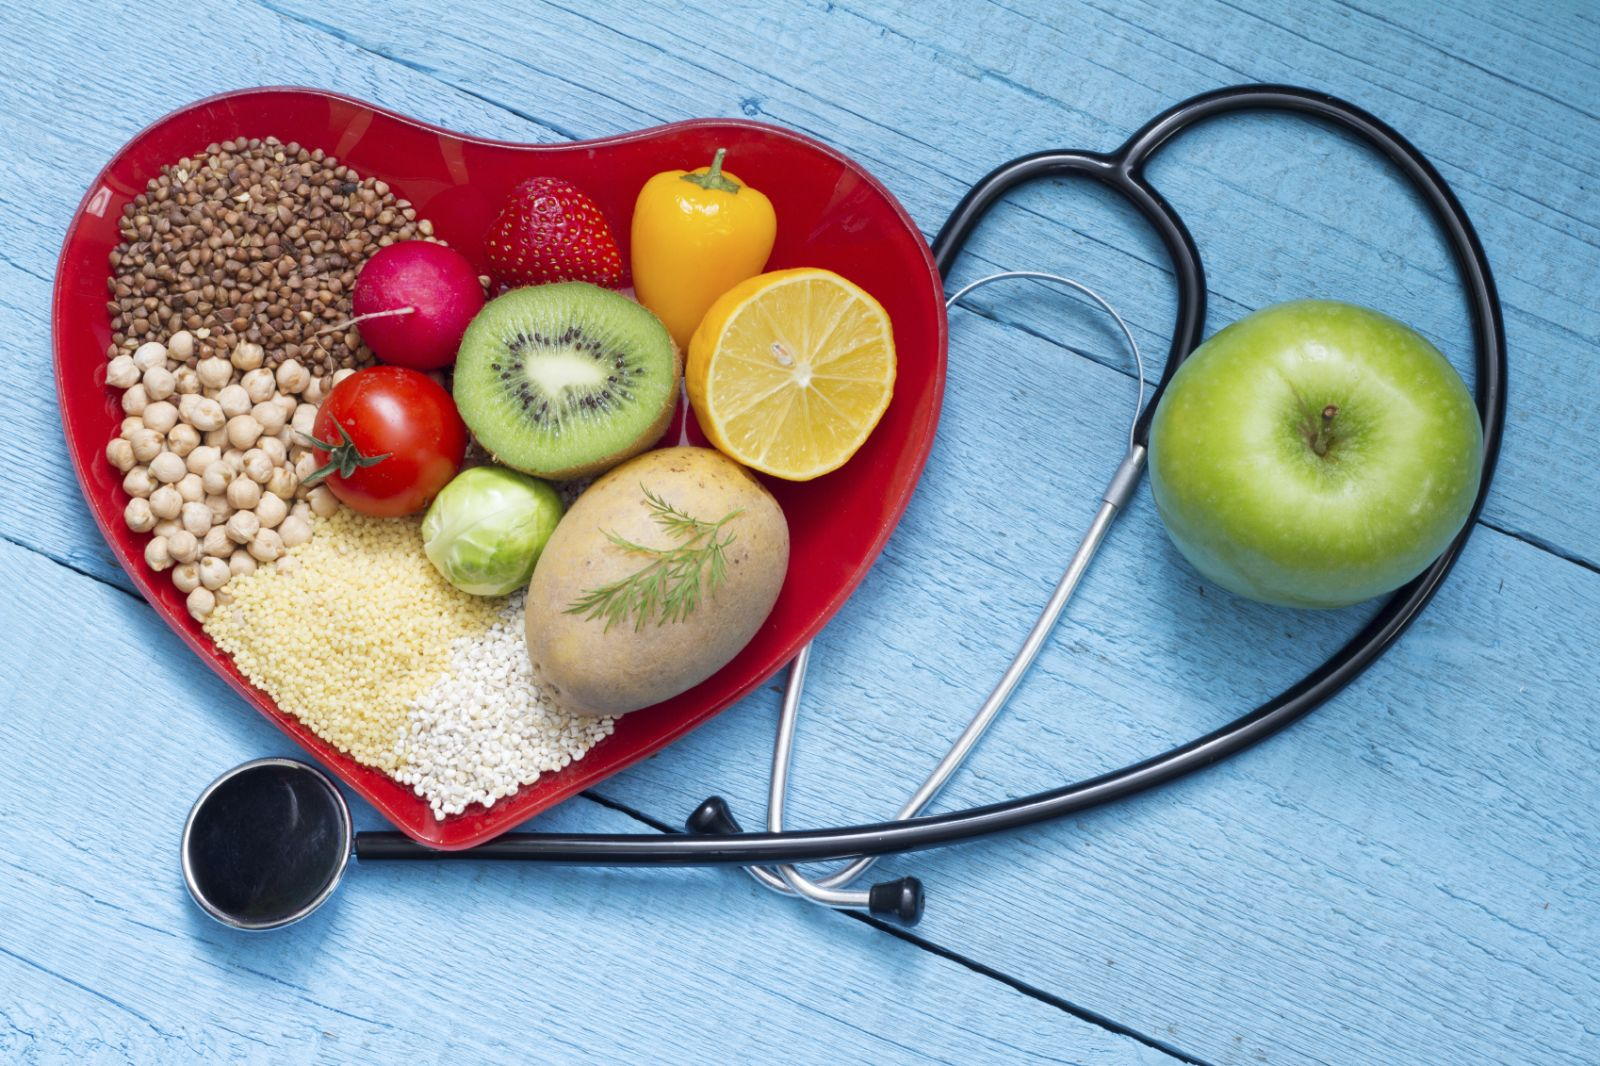 Tips for healthy cholesterol and heart